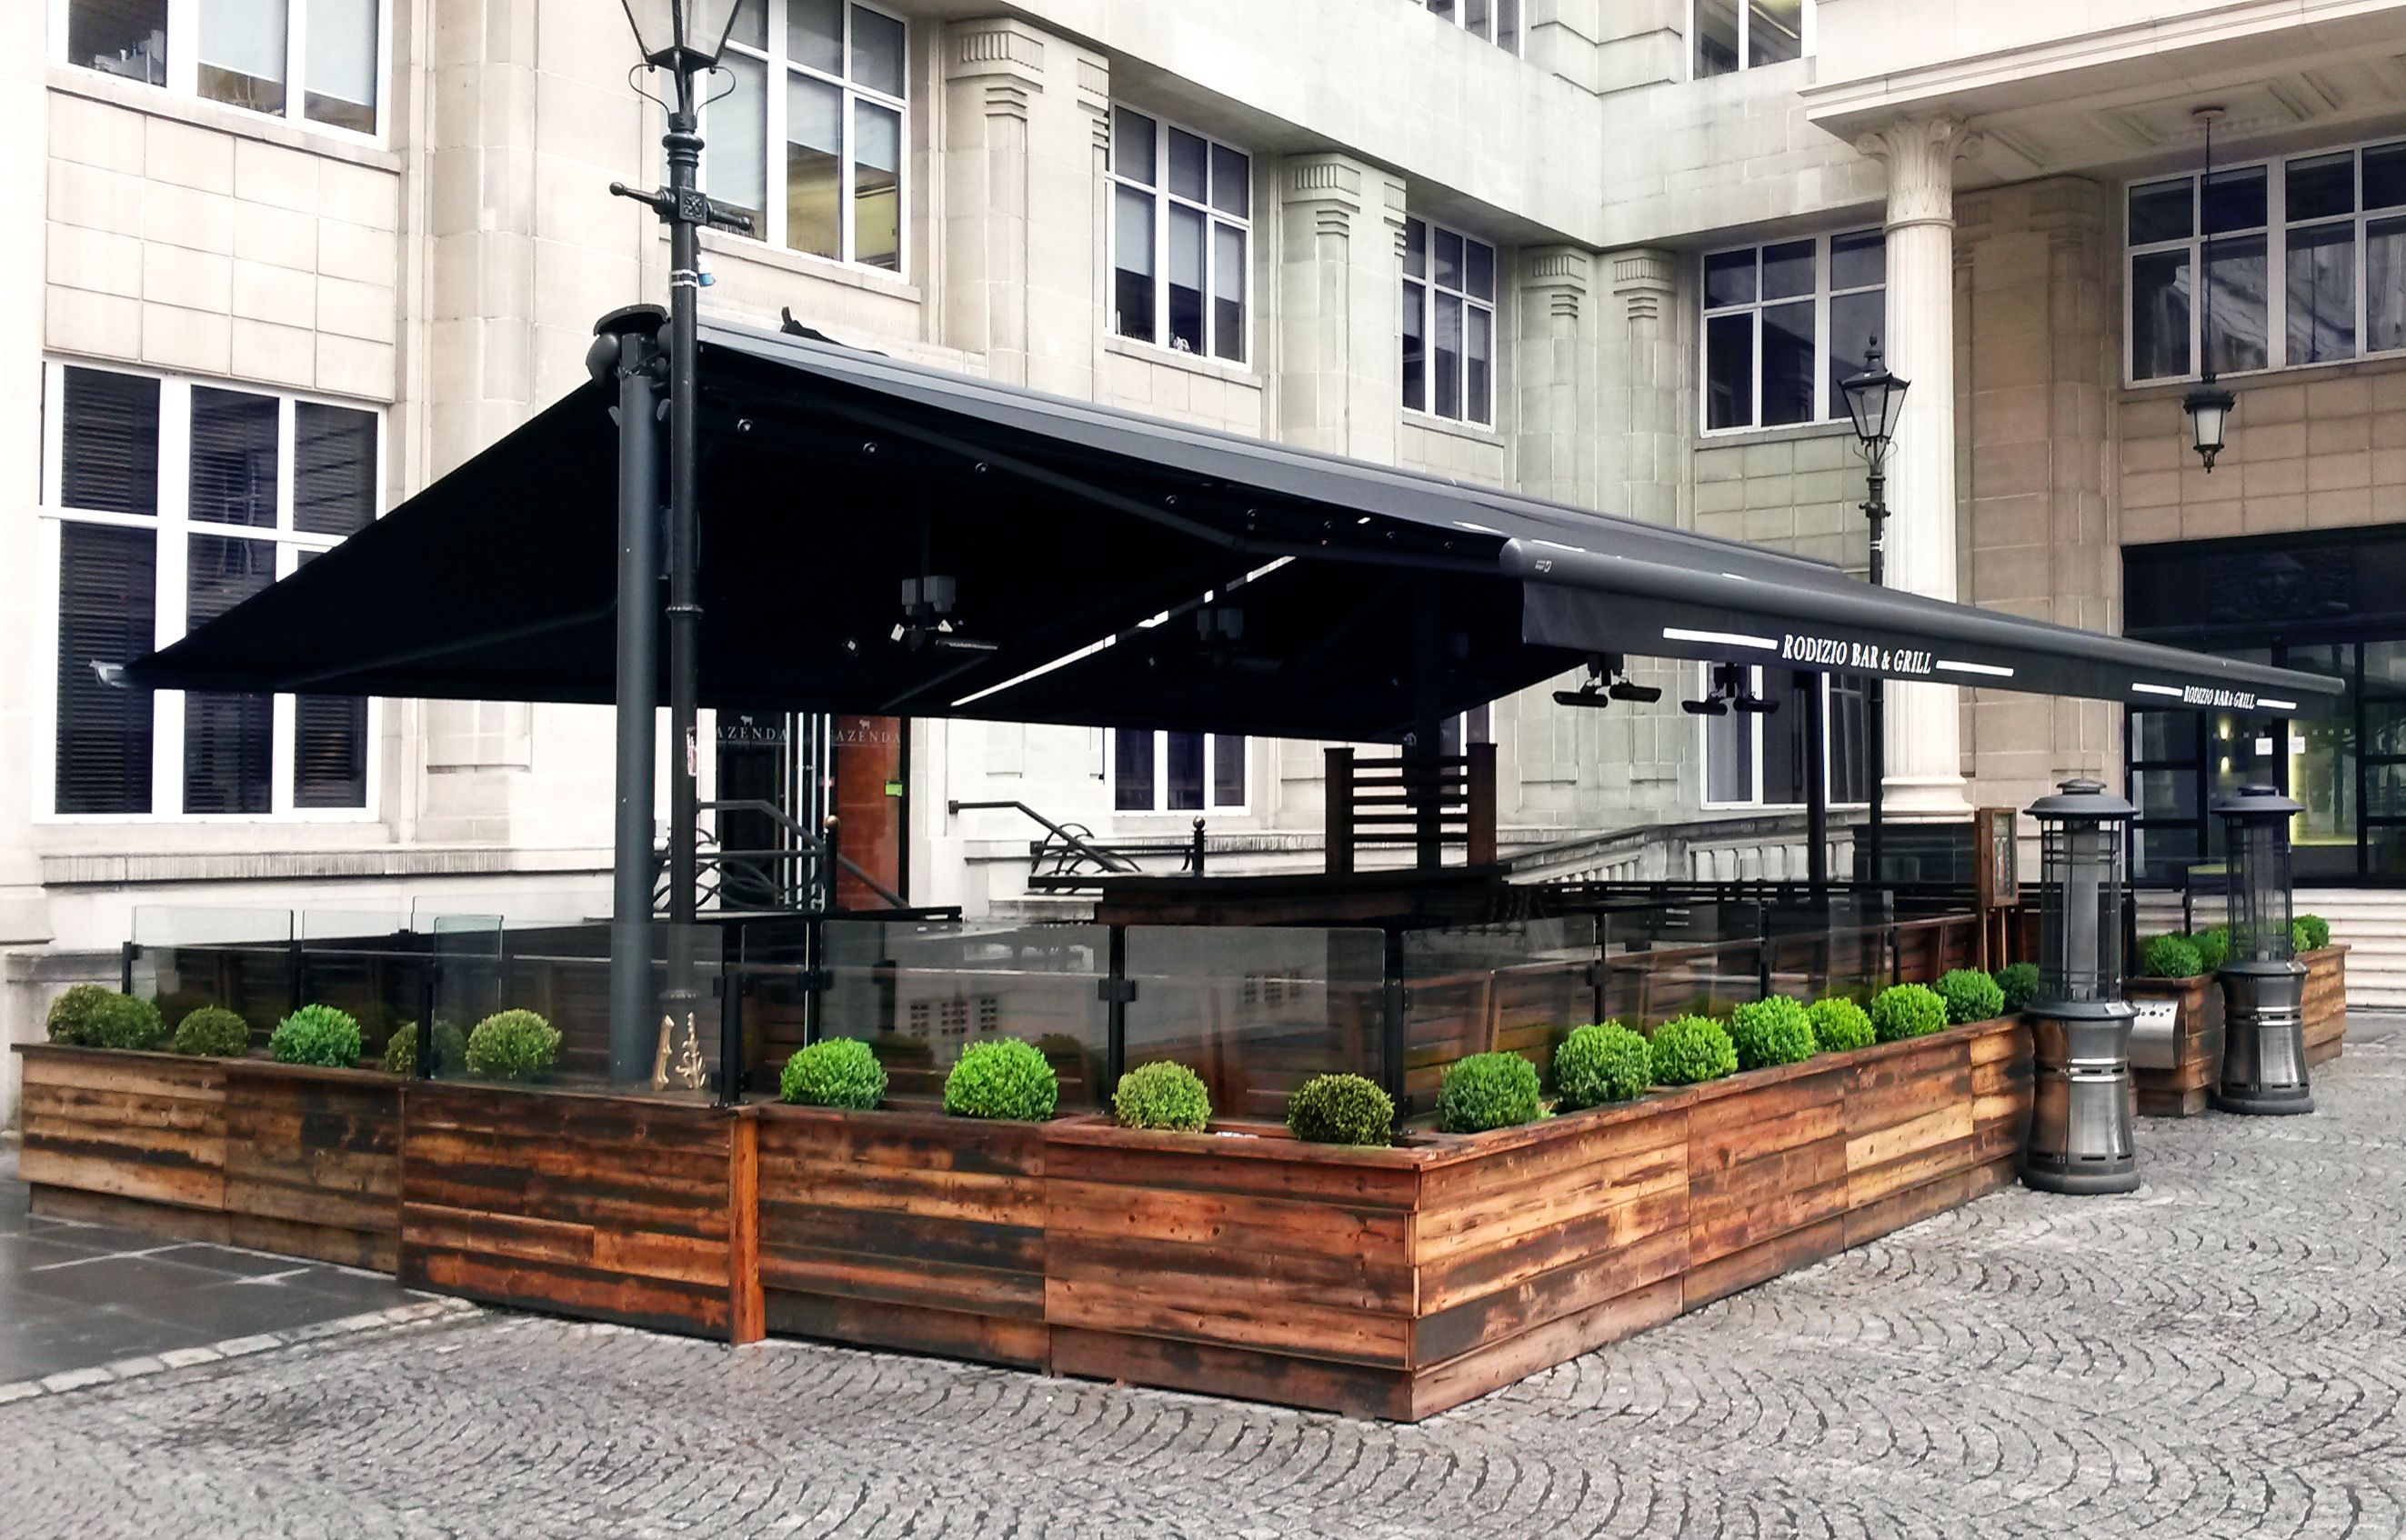 Butterfly Awning With Branded Valances Heaters And Planters See